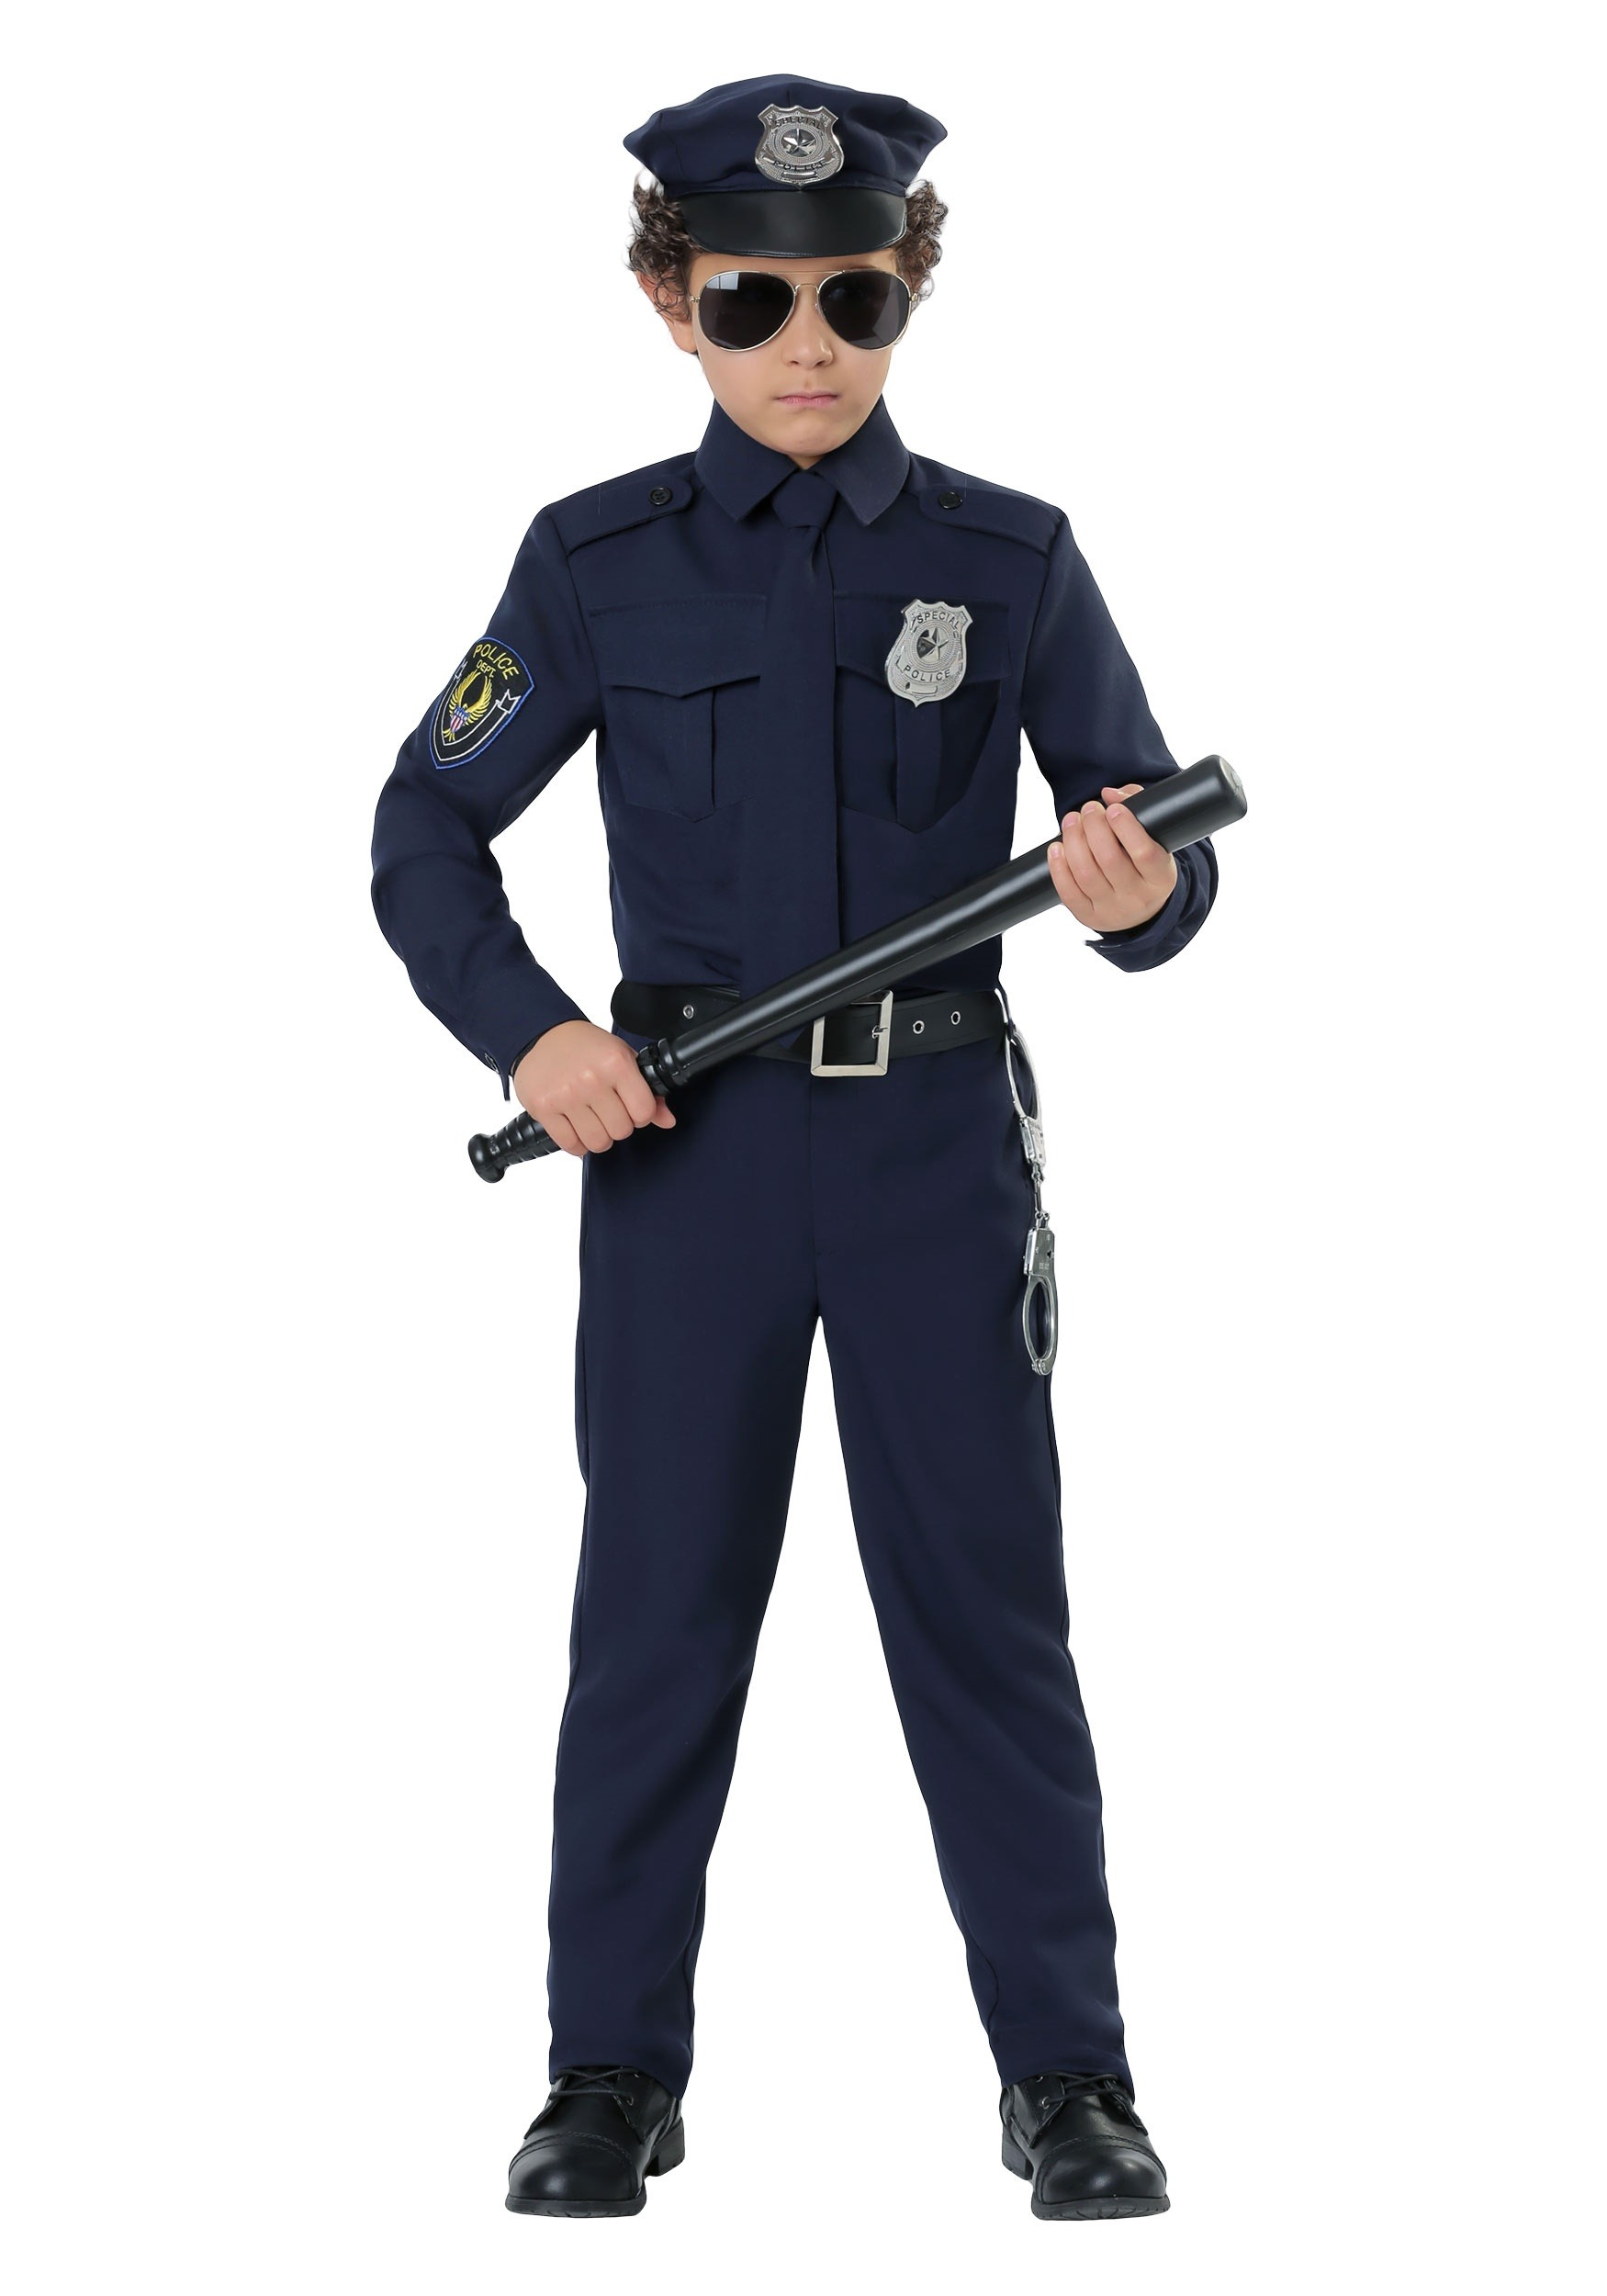 Cop Costume For Toddler